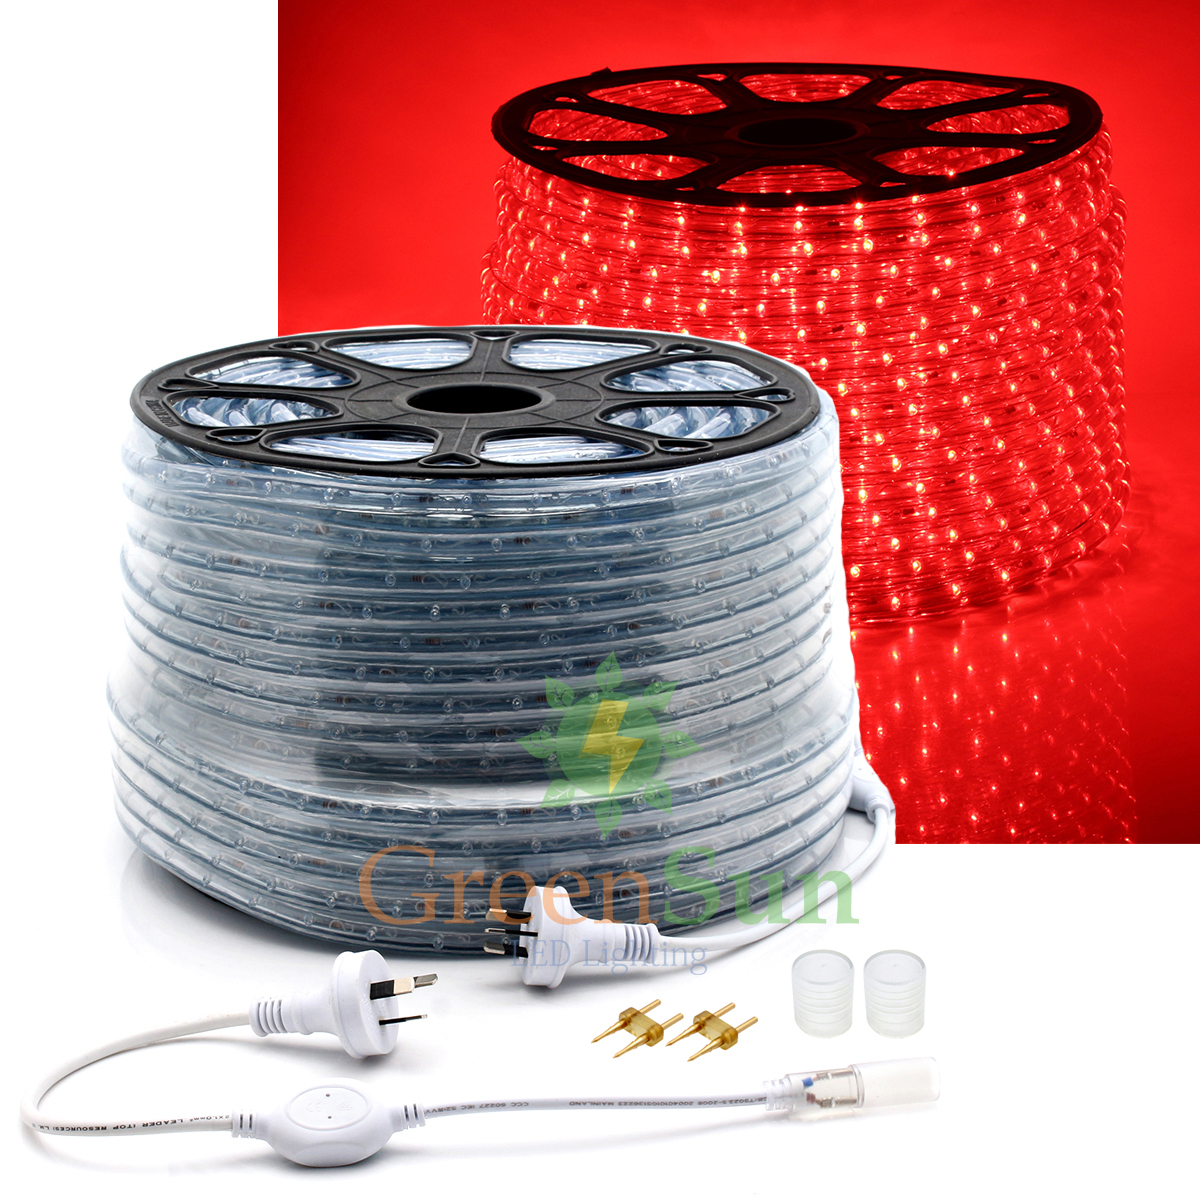 Red 20-50M M36 leds/m 2-Wire LED Strip Rope Light Waterproof IP68 Home Garden Xmas Lamp LED Strip Light With Power line 0 9m smd 3528 90 leds waterproof led rope light festival lighting